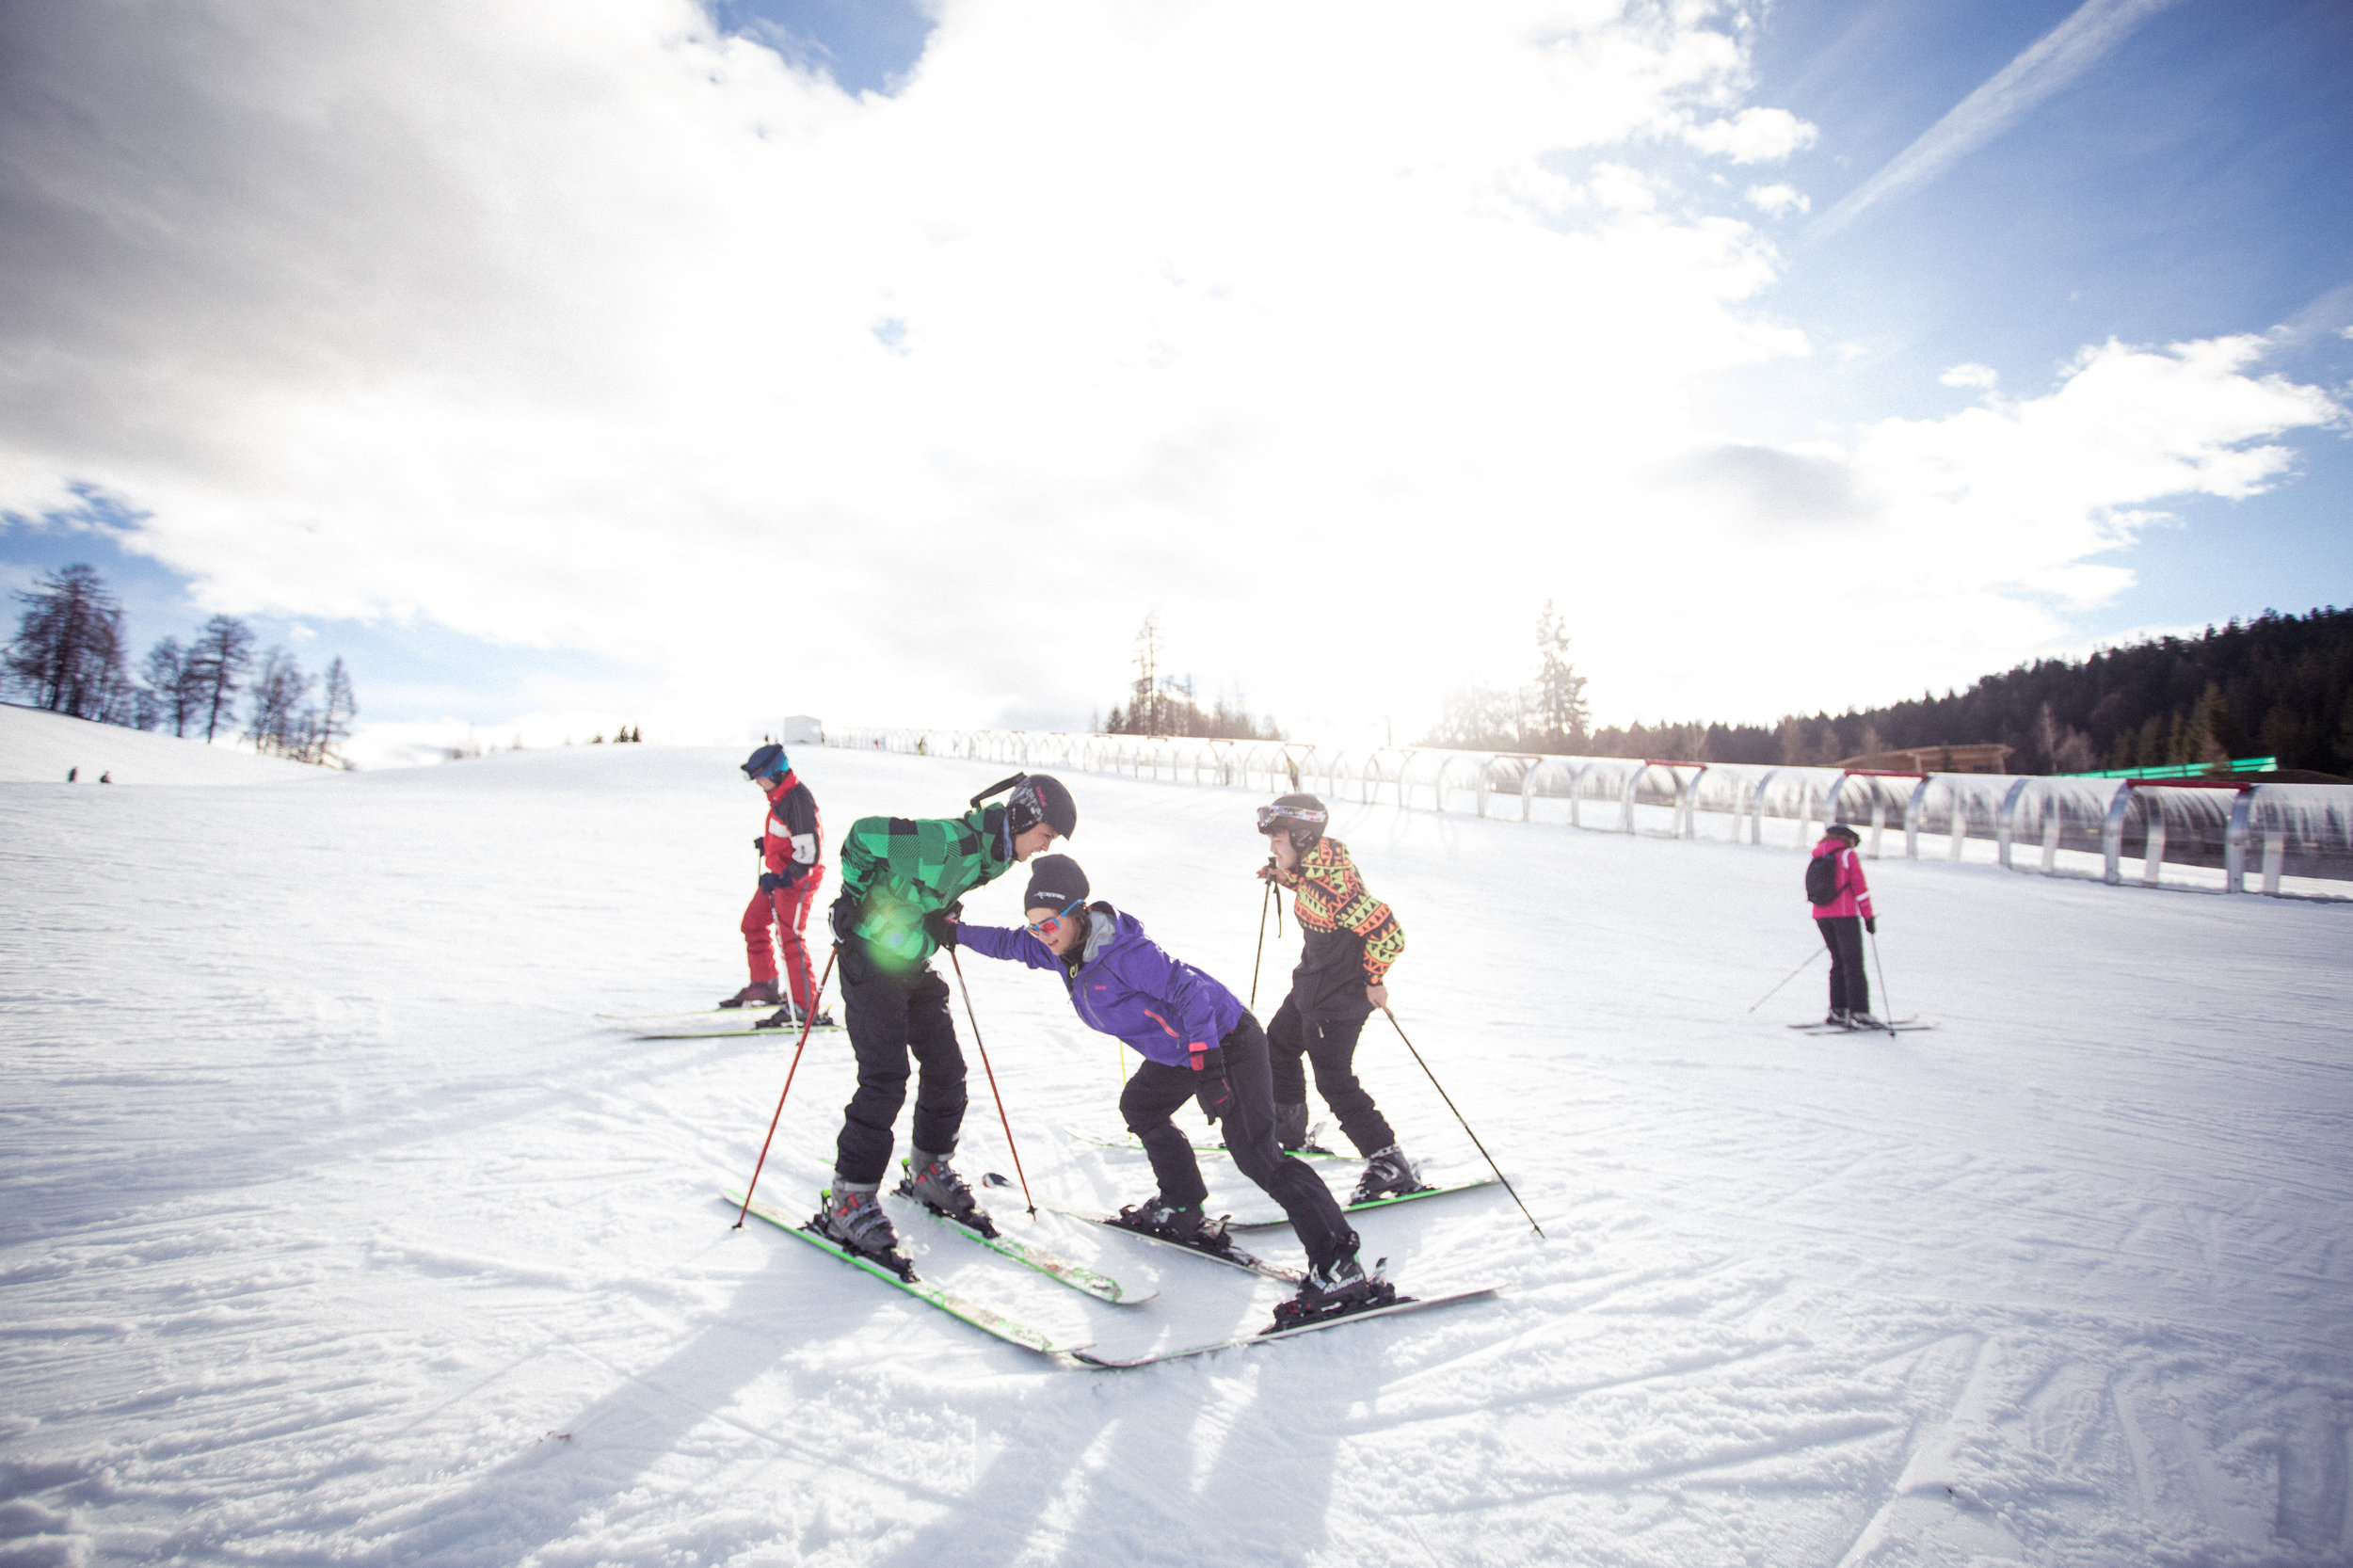 People of every age and every level are welcome to experience the passion for skiing. -